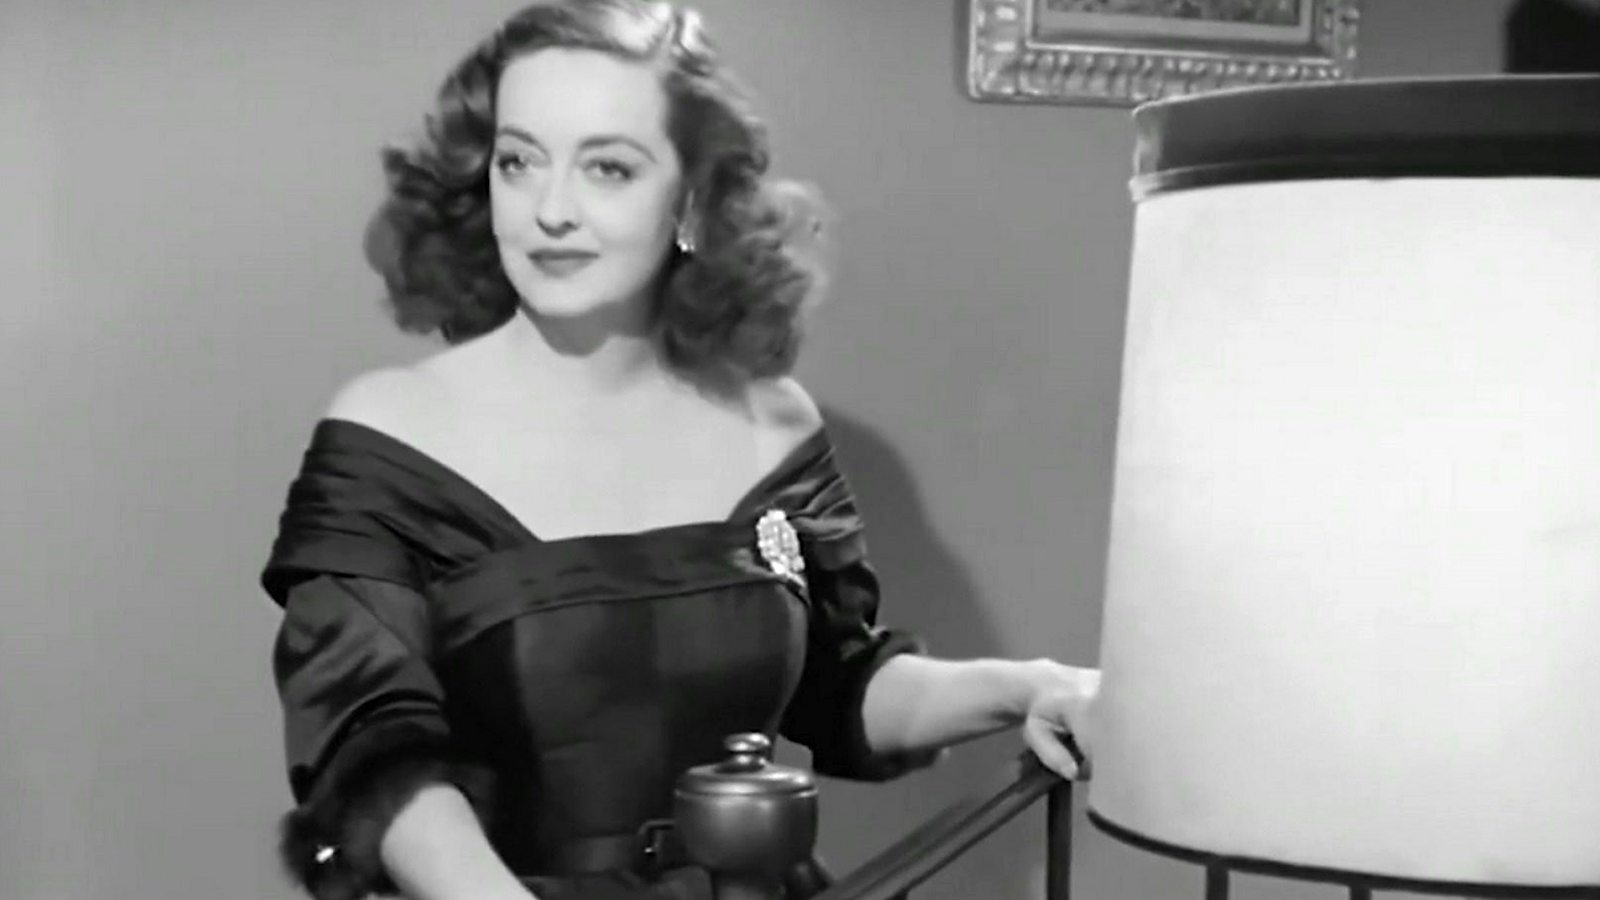 Bette Davis's All About Eve turn's 70